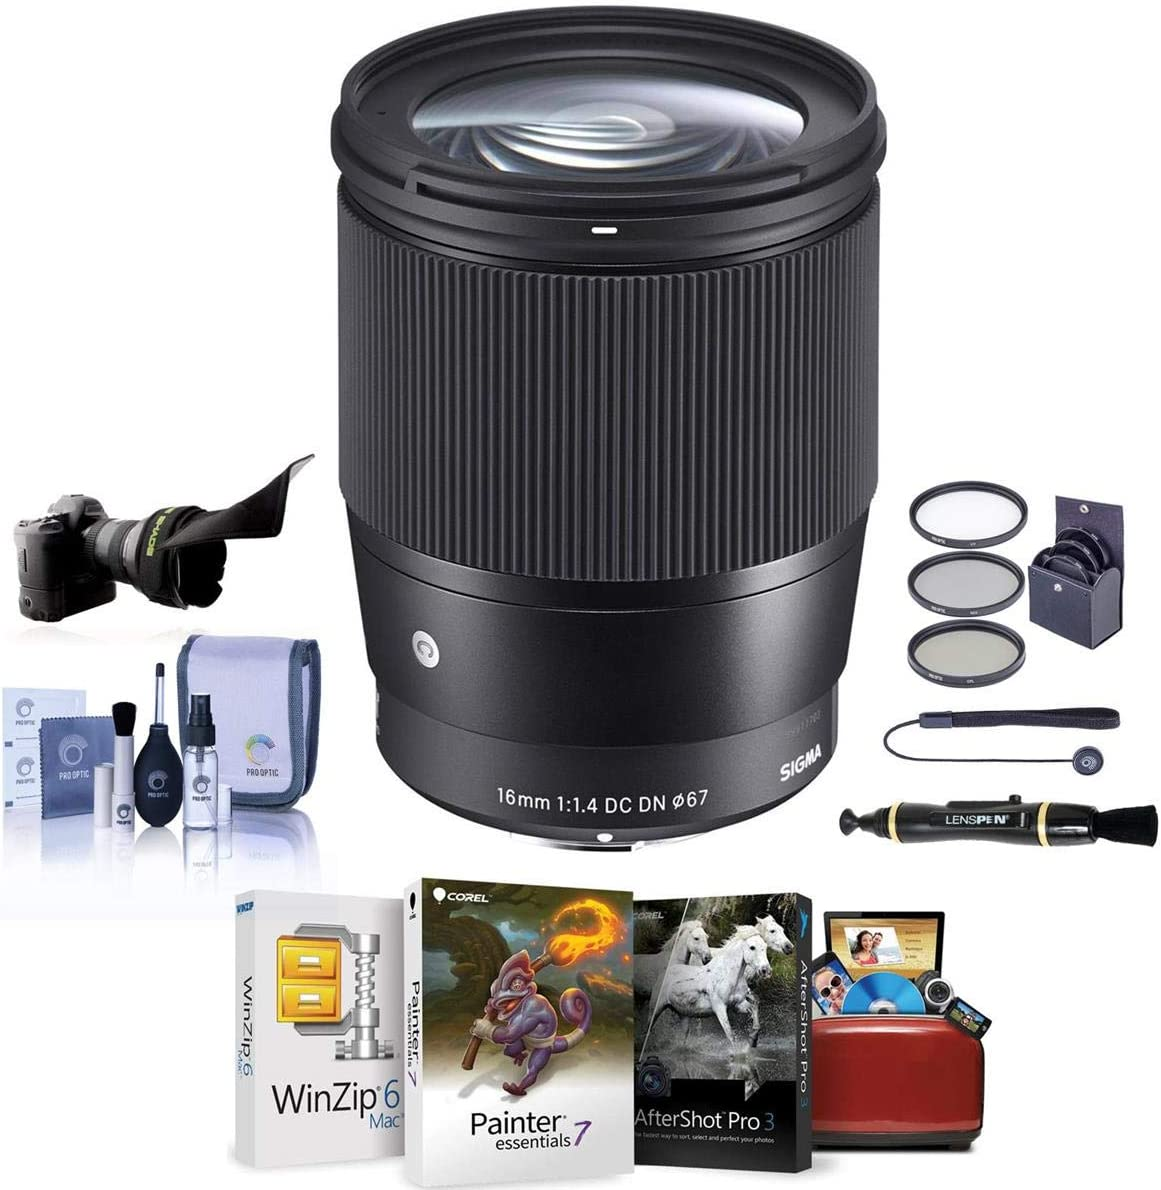 Sigma 16mm f/1.4 DC DN Contemporary Lens for Canon EF-M Cameras Black - Bundle with 67mm Filter Kit, Flex Lens Shade, Cleaning Kit, Capleash II, Lenspen Lens Cleaner, Mac Software Package